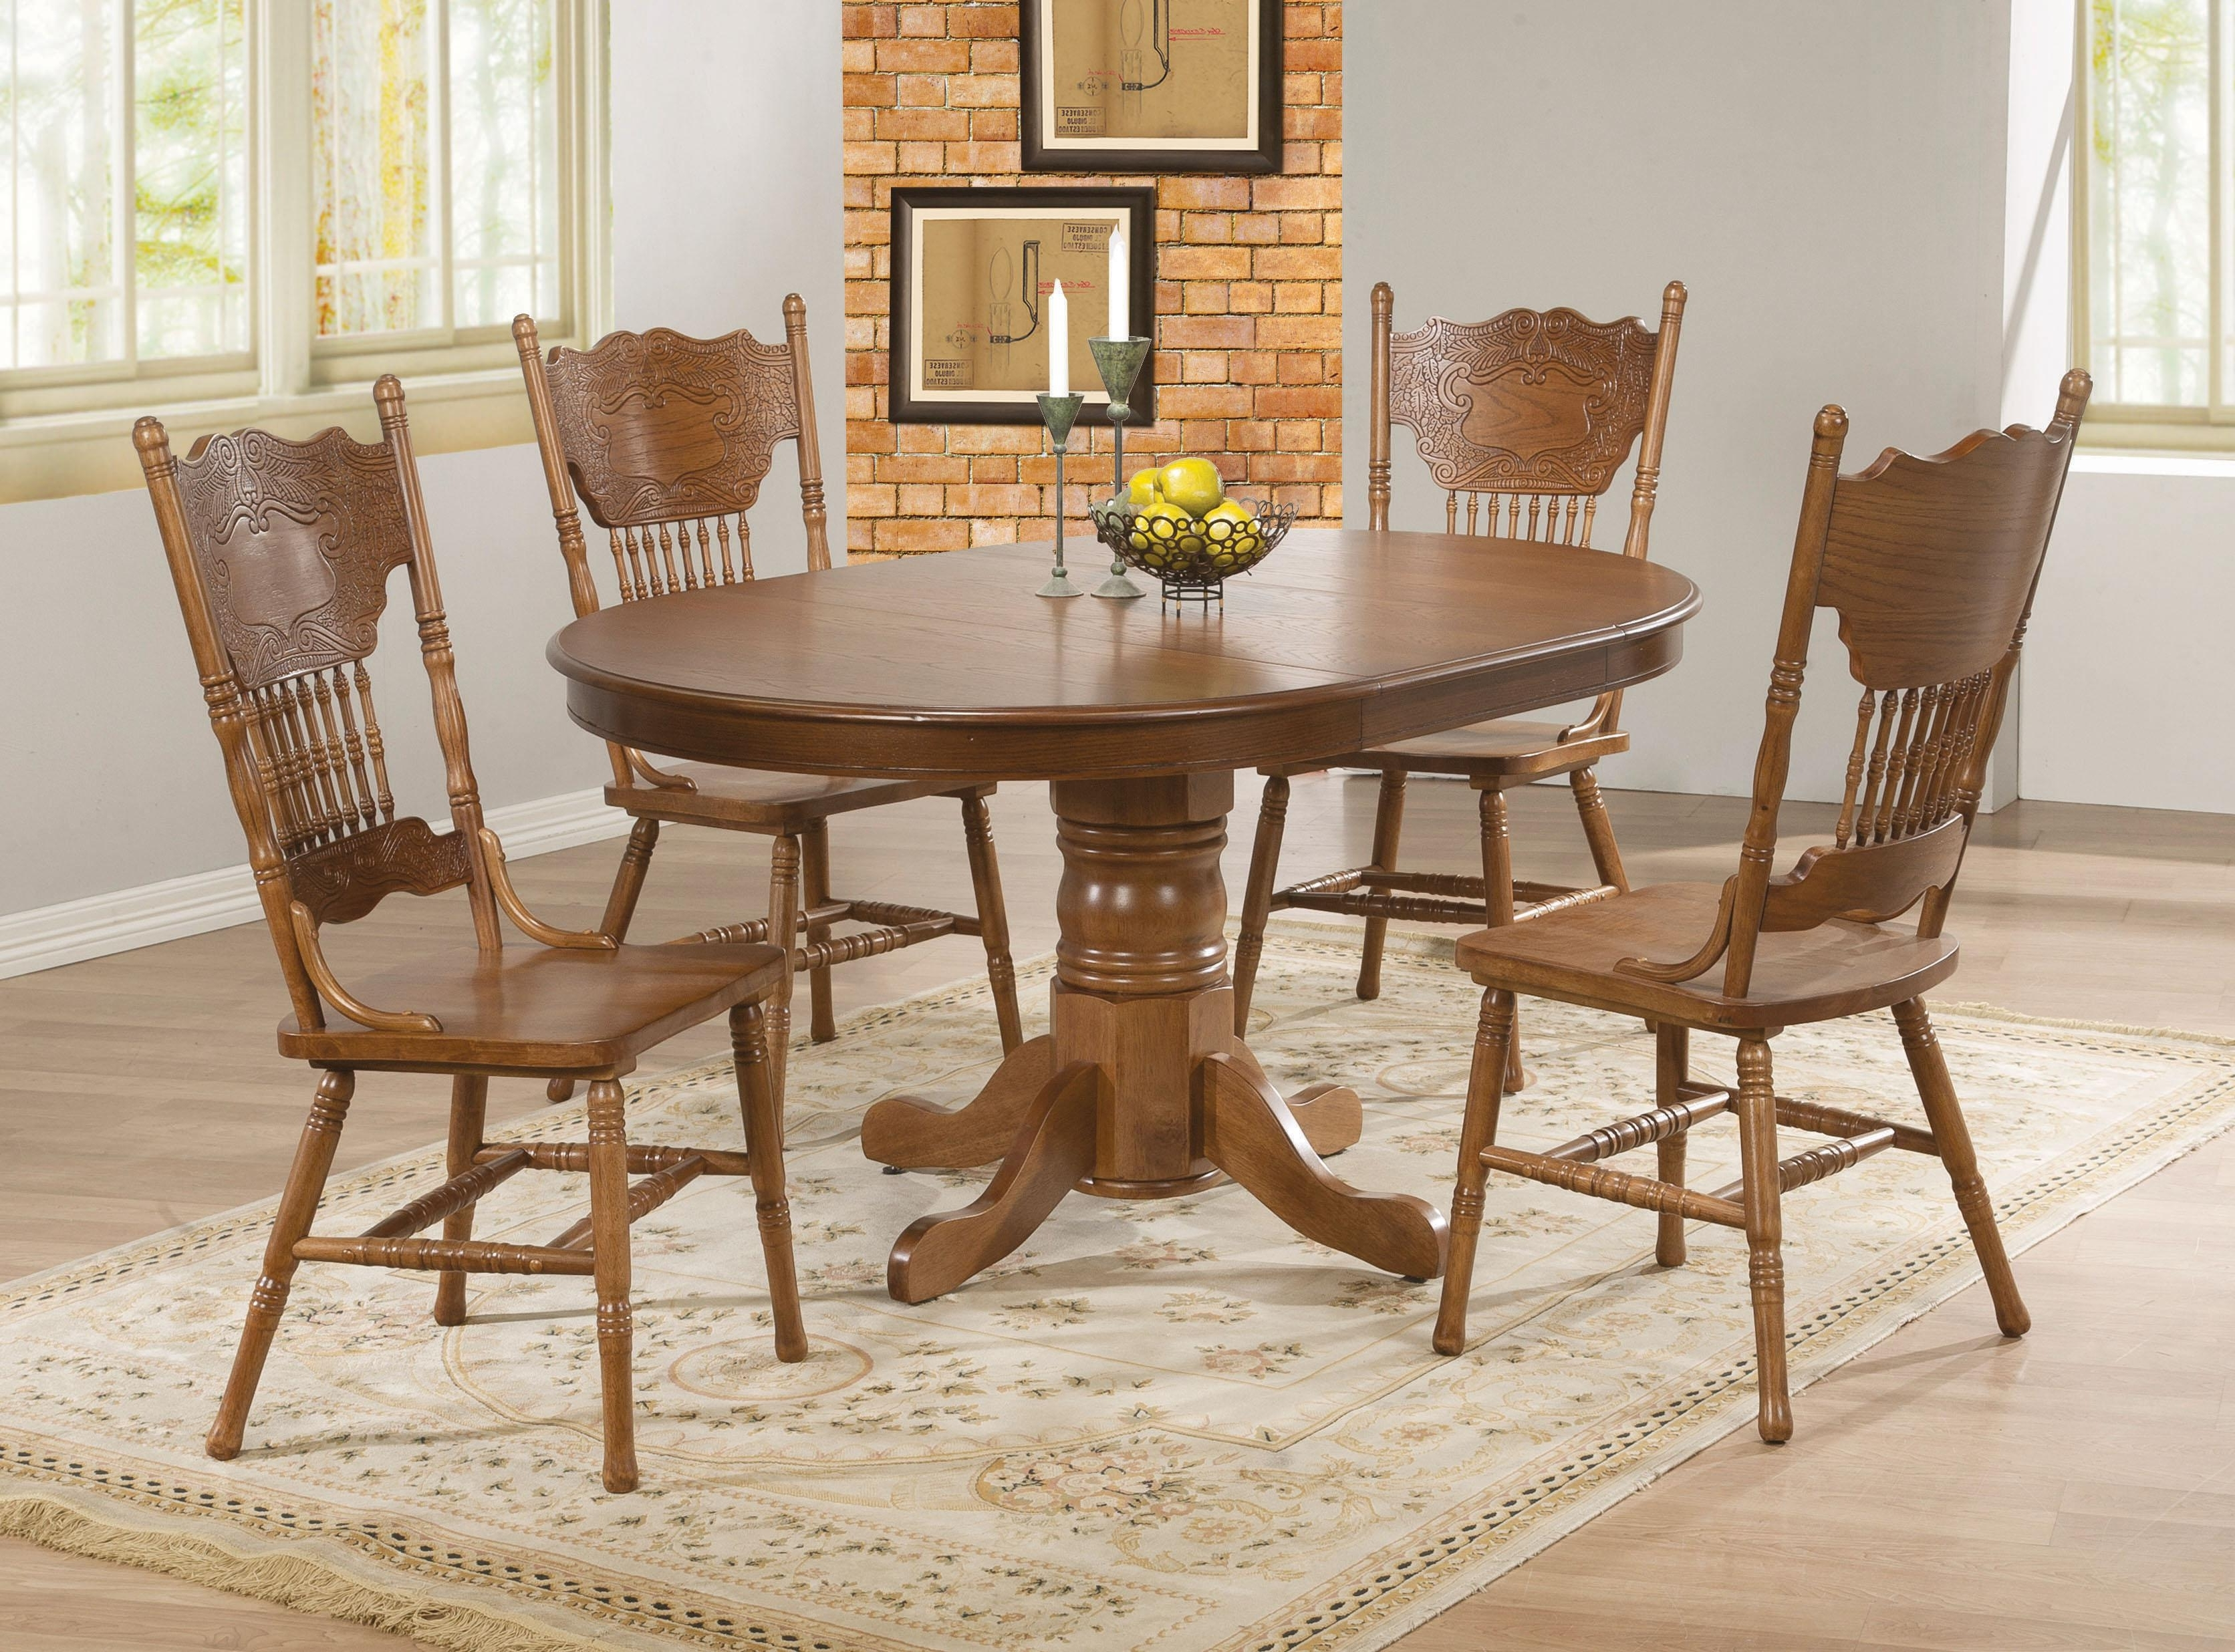 Oak And Glass Dining Tables Sets Regarding Favorite Round Dining Table Htm Oak Oval Dining Table And Chairs As Glass (View 13 of 25)